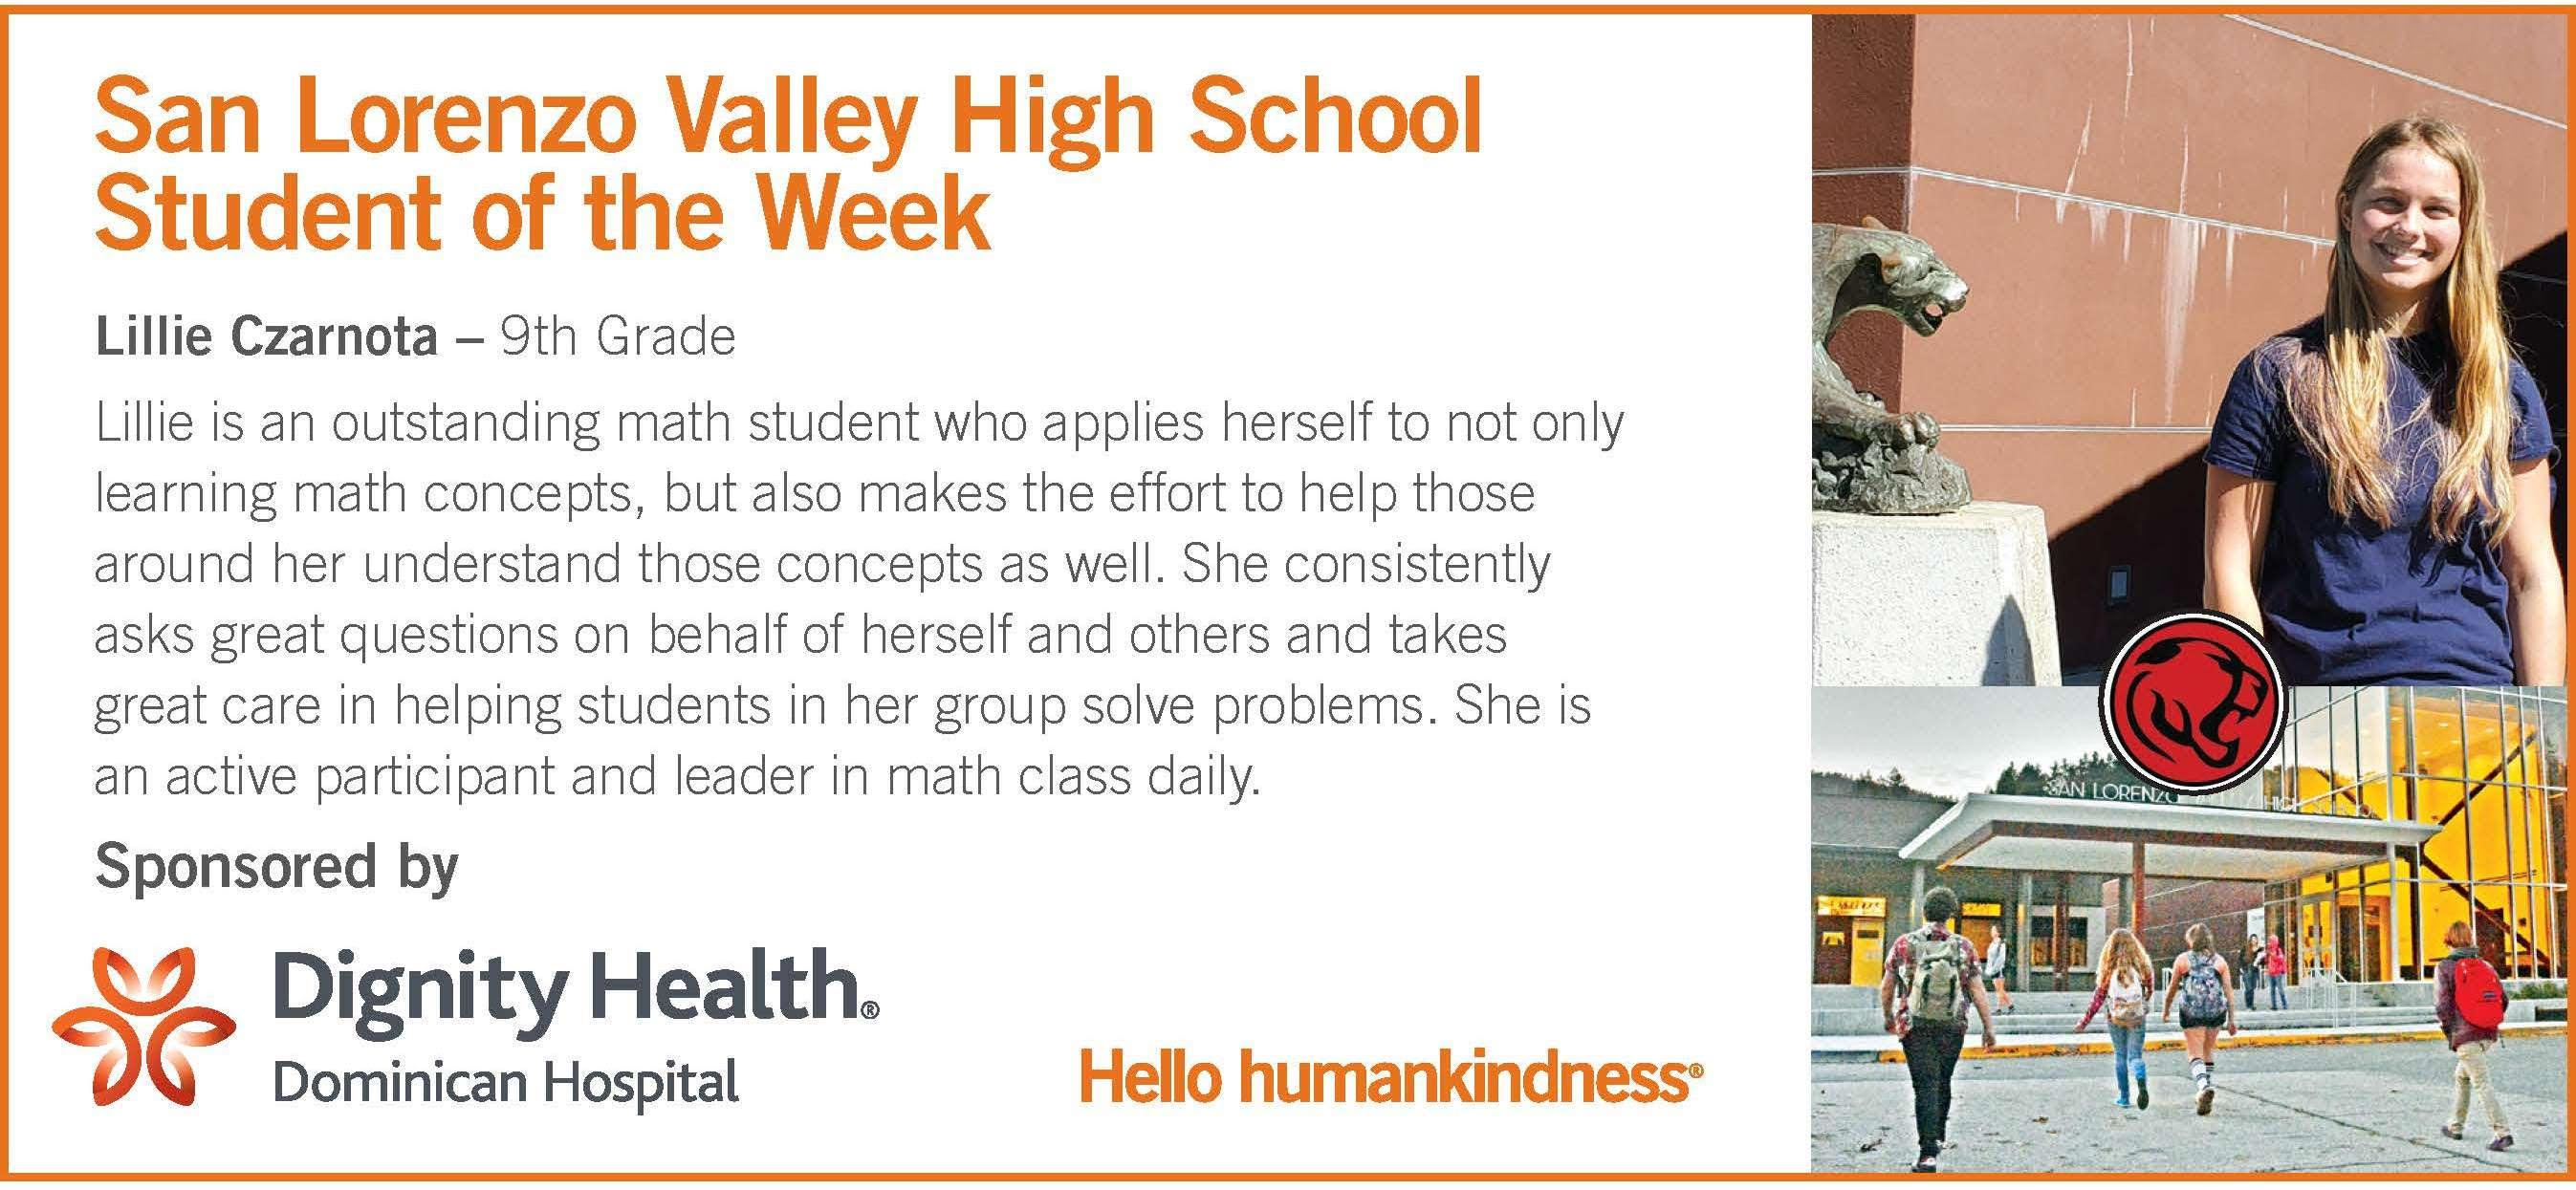 HS Student of the Week: Lillie Czarnota -9th